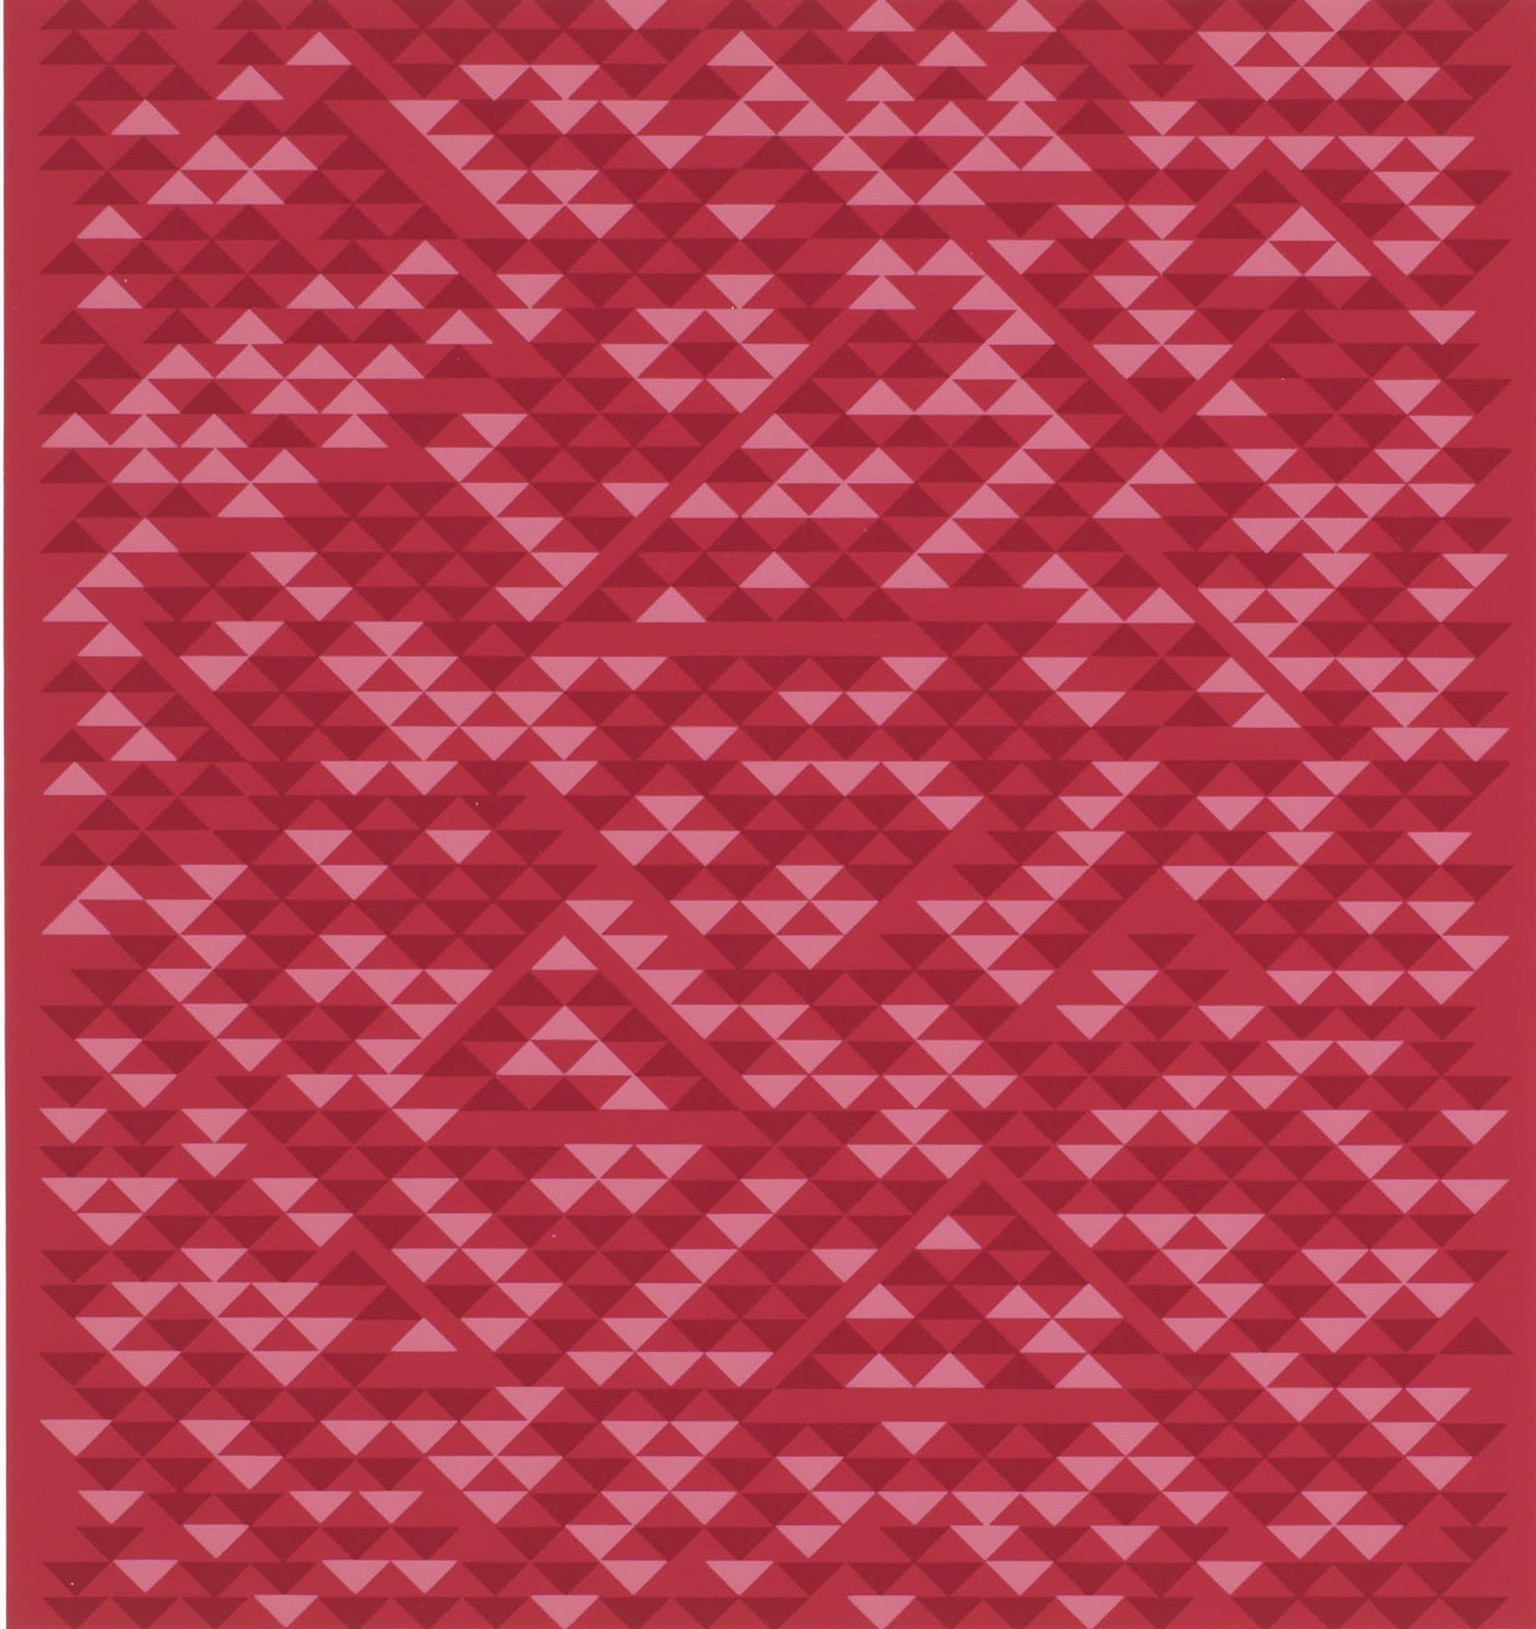 Anni Albers, Camino Real, 1967. Courtesy the Joyef and Anni Albers Foundation and Alan Cristea Gallery